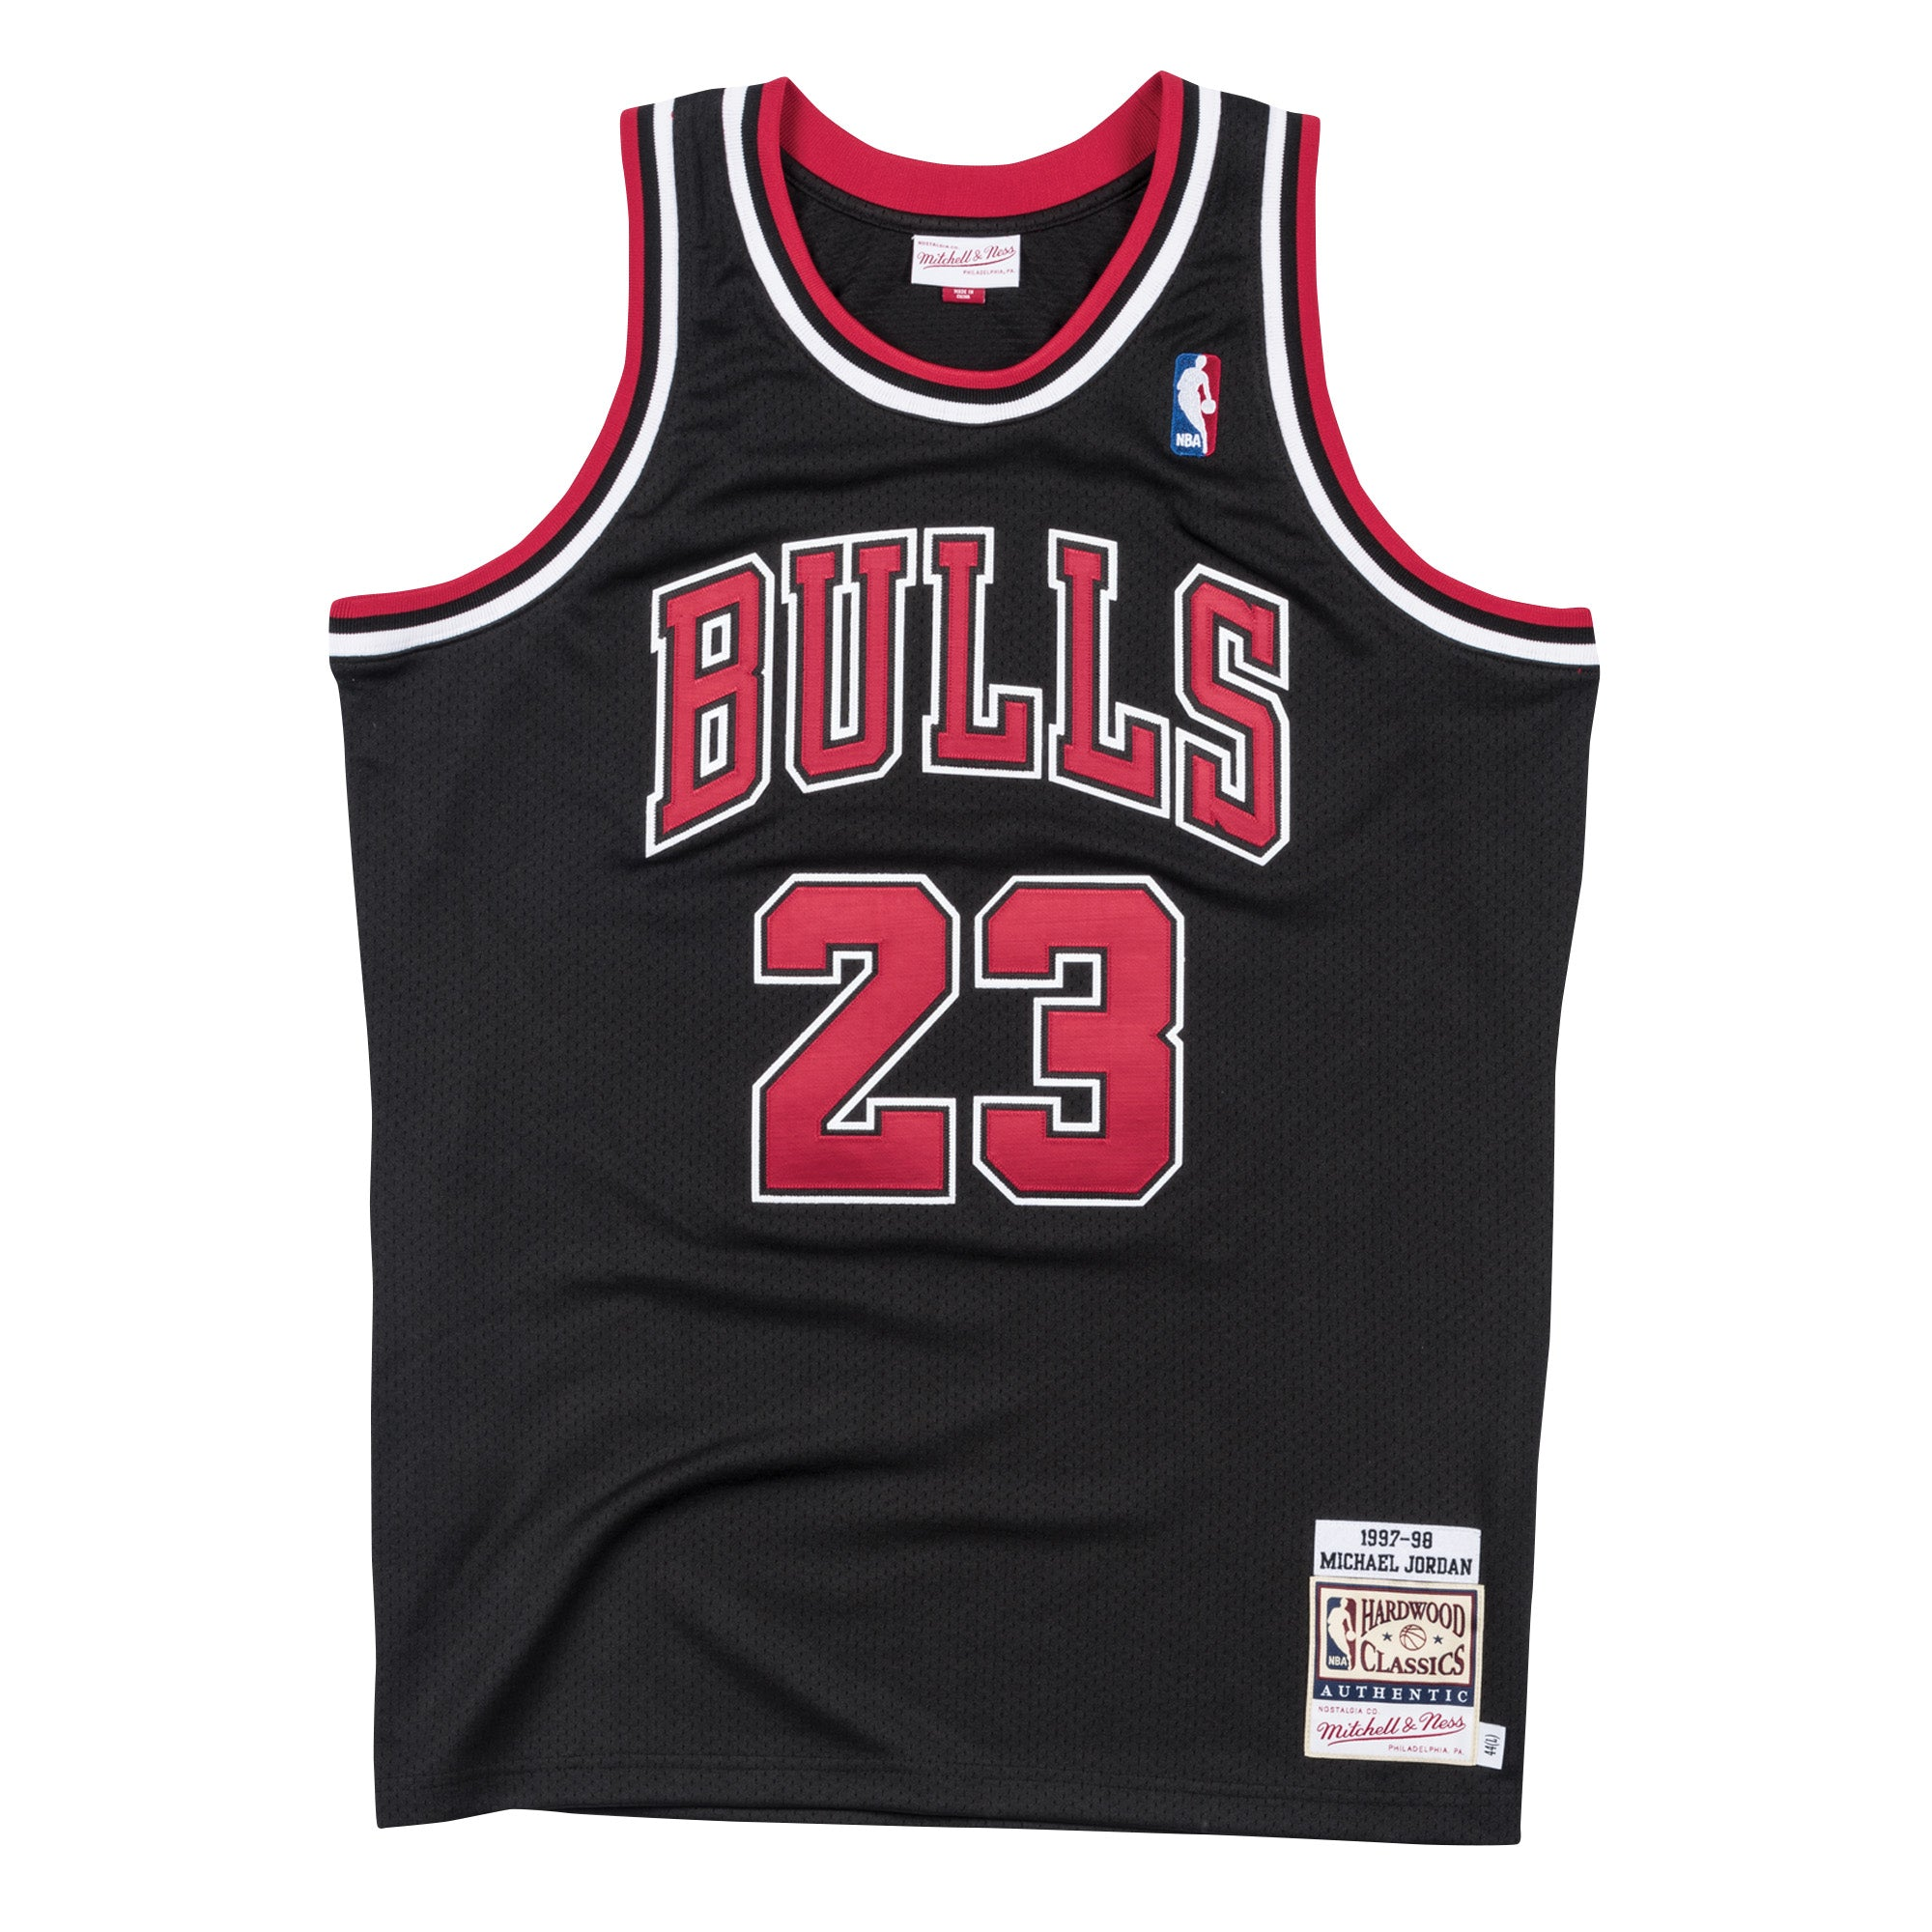 detailed look 2149e 43d8f Michael Jordan Chicago Bulls Hardwood Classics Throwback Premium NBA  1997-98 NBA Authentic Jersey